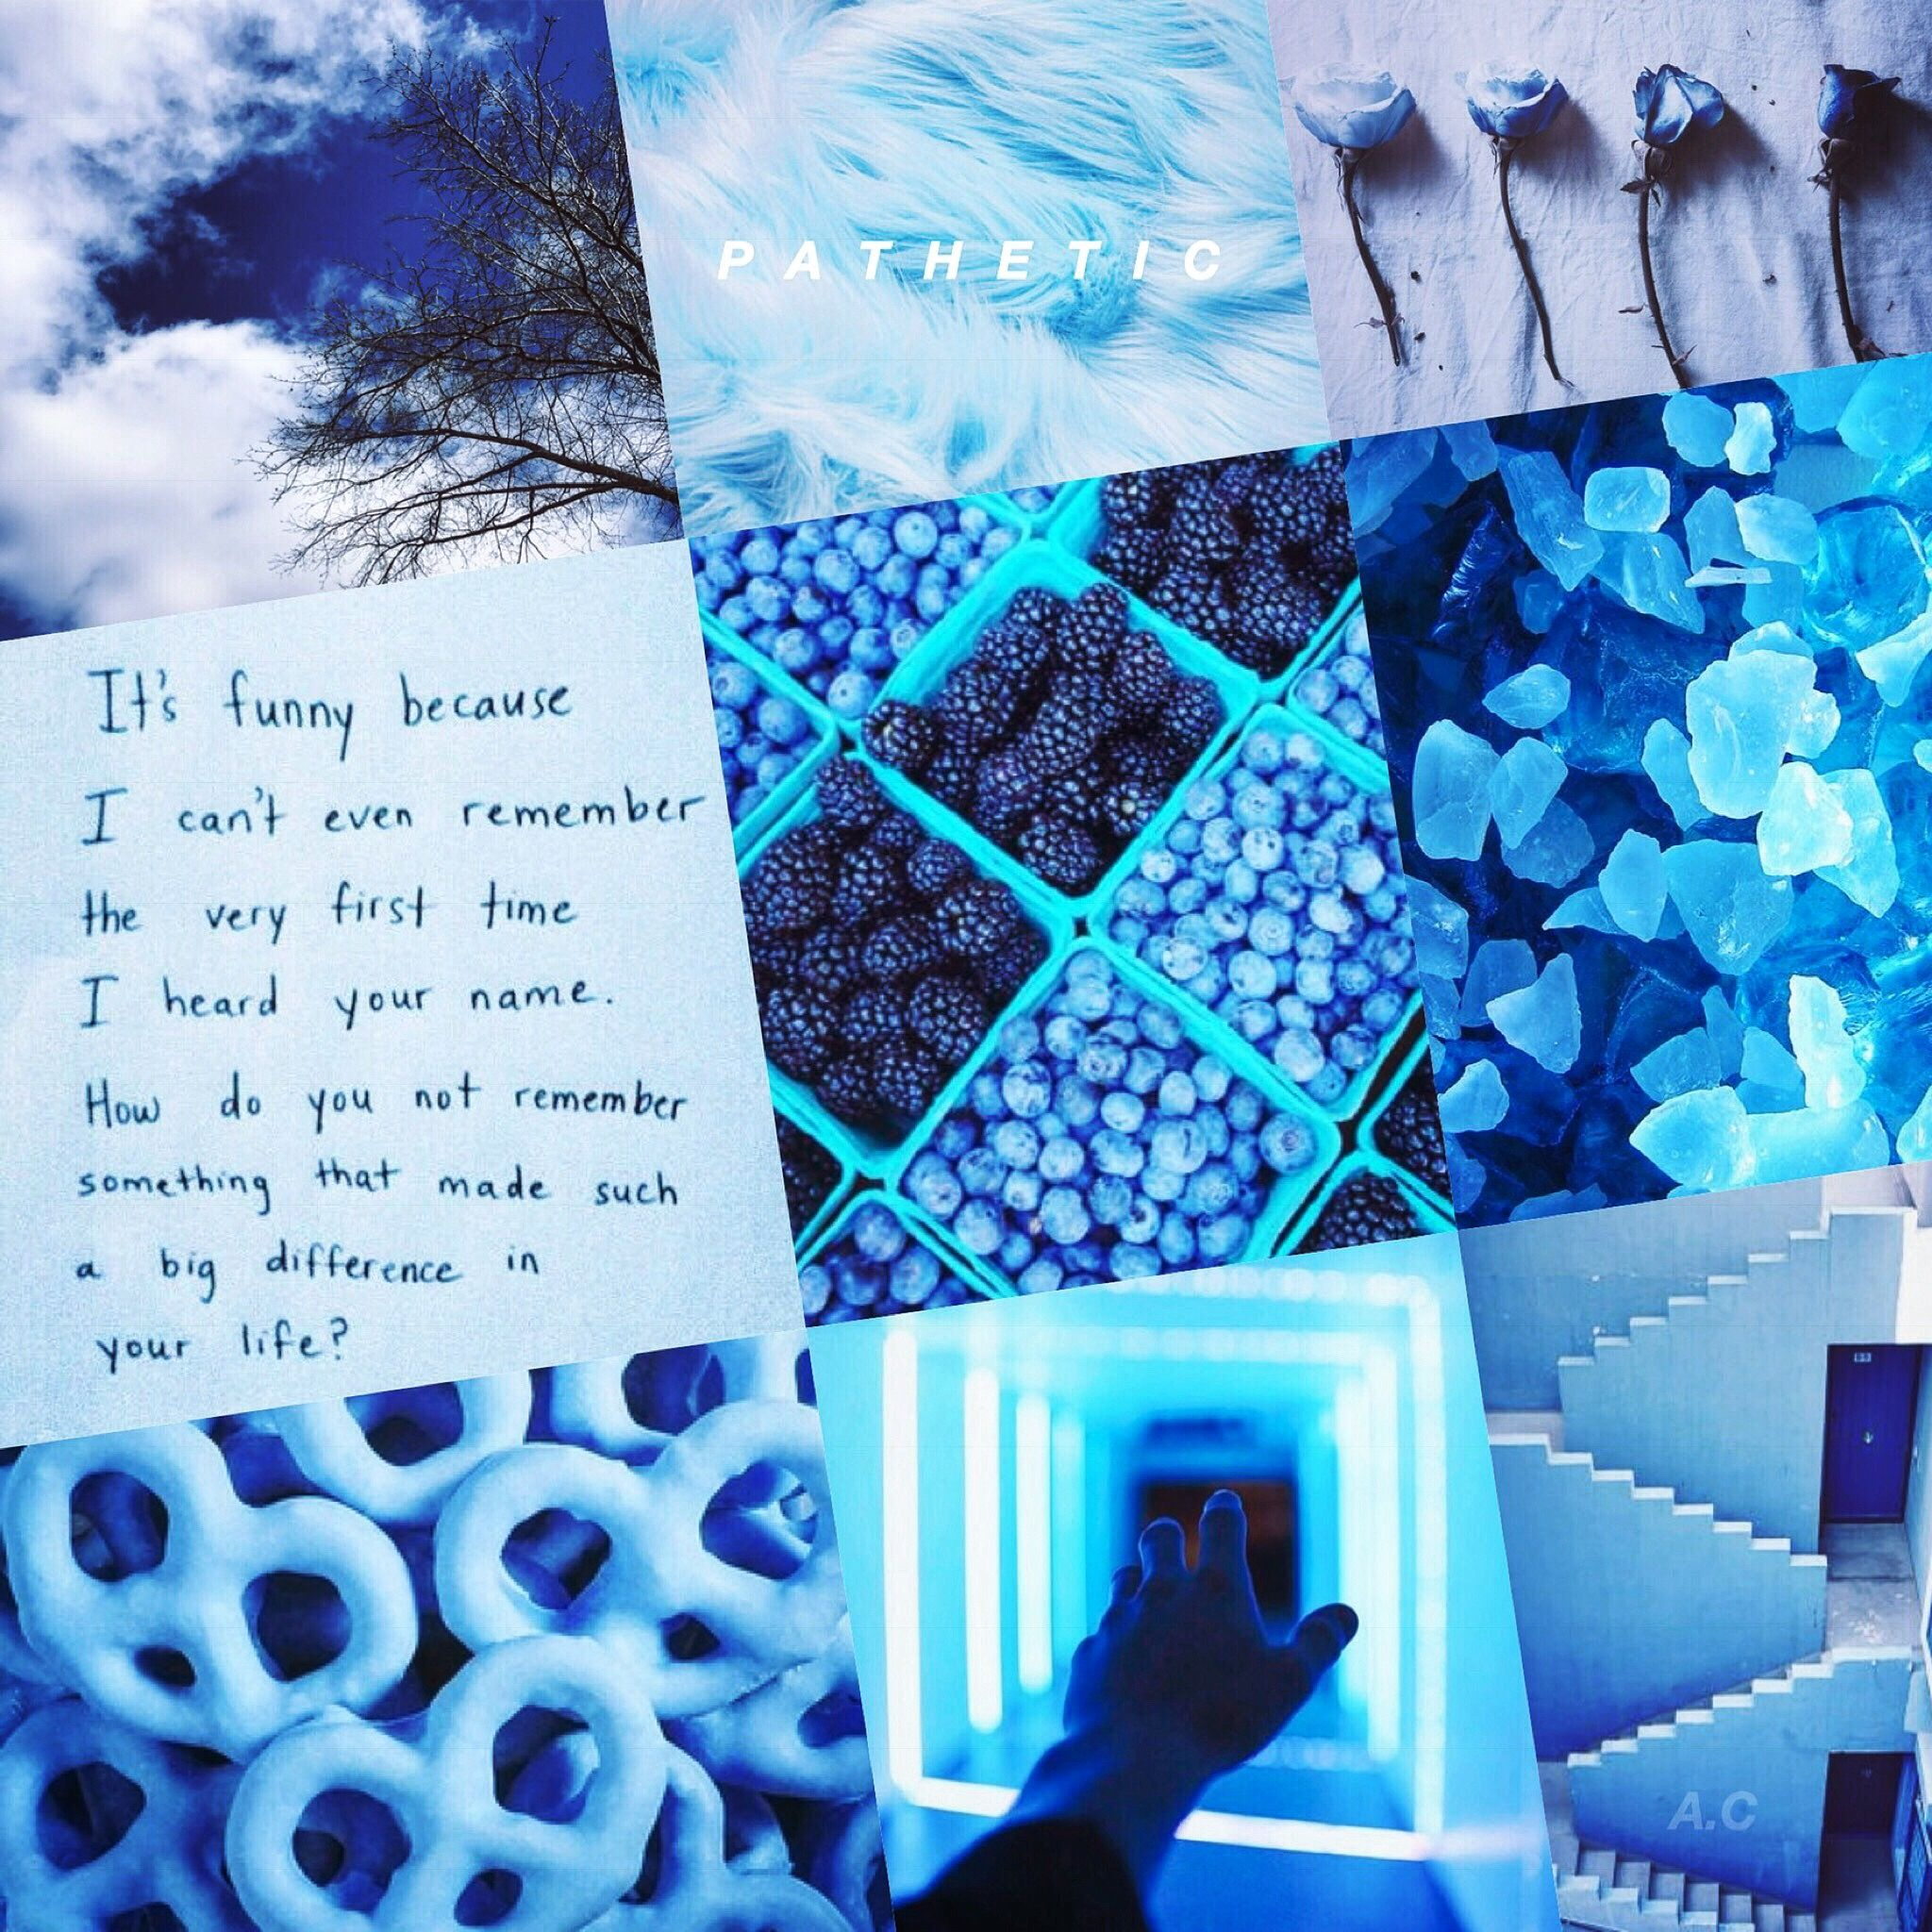 One of my baby blue pastel aesthetic mood board collages